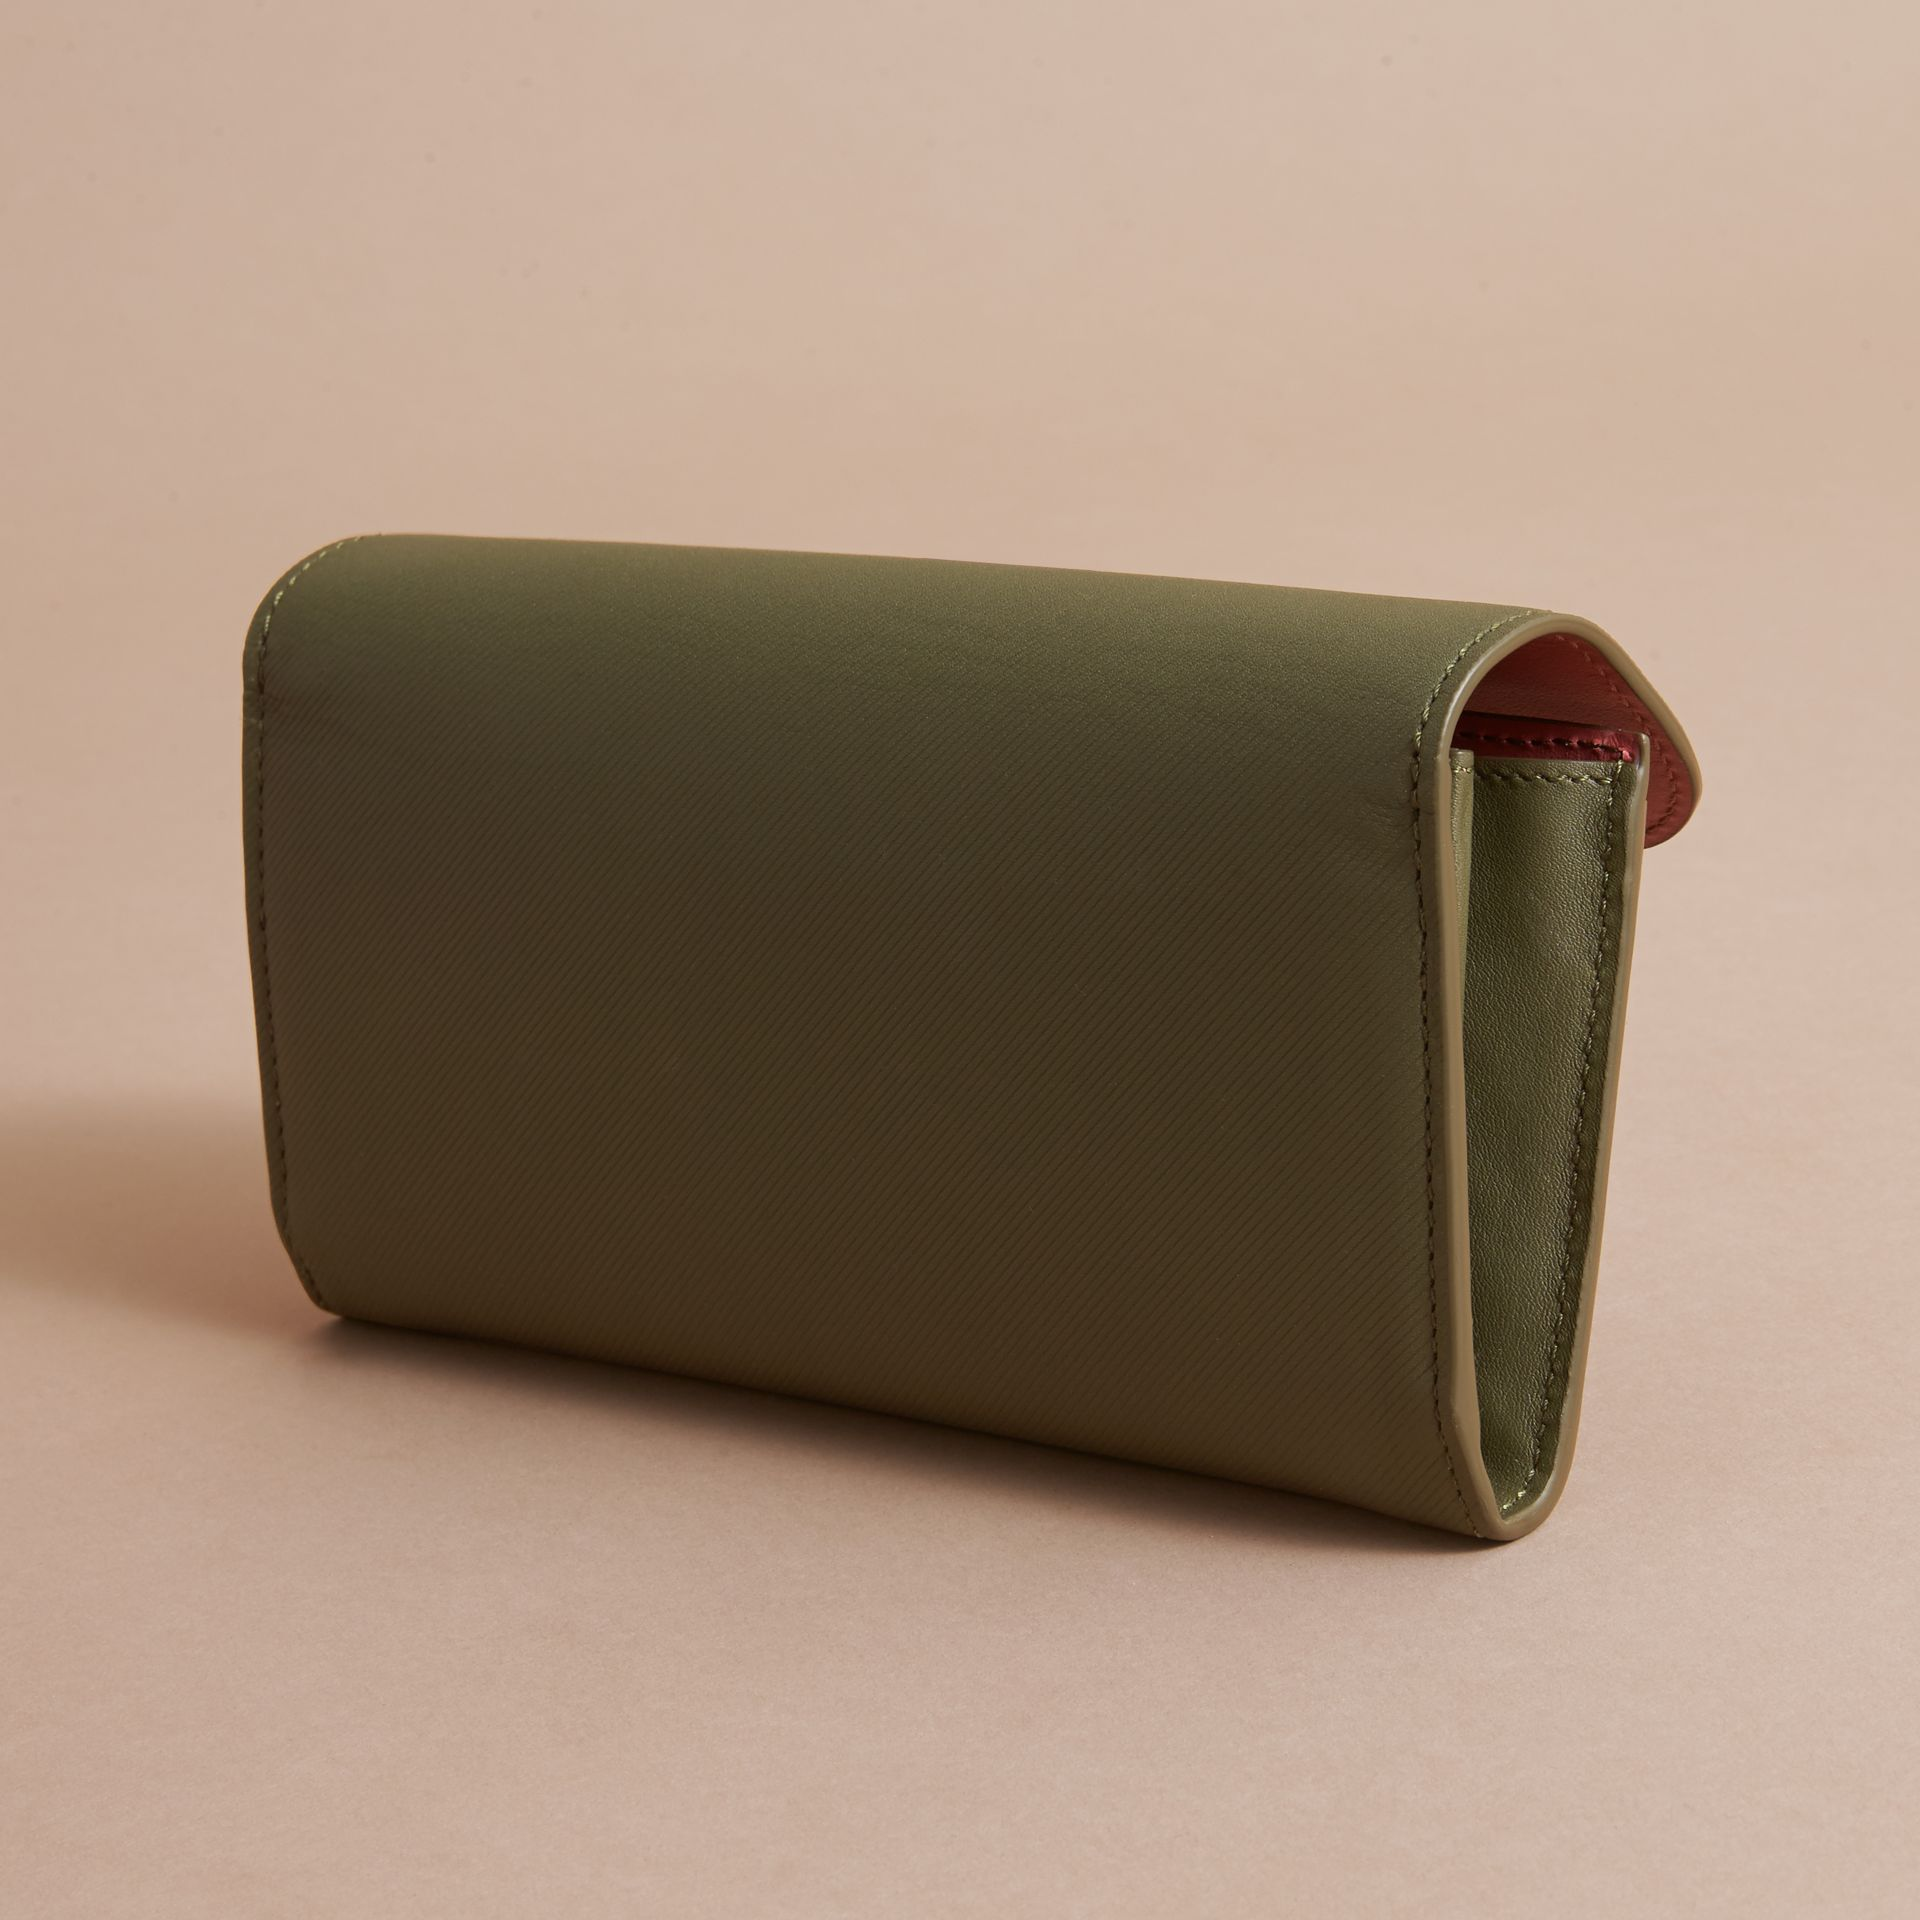 Two-tone Trench Leather Continental Wallet Moss Green/ Blossom Pink - gallery image 4